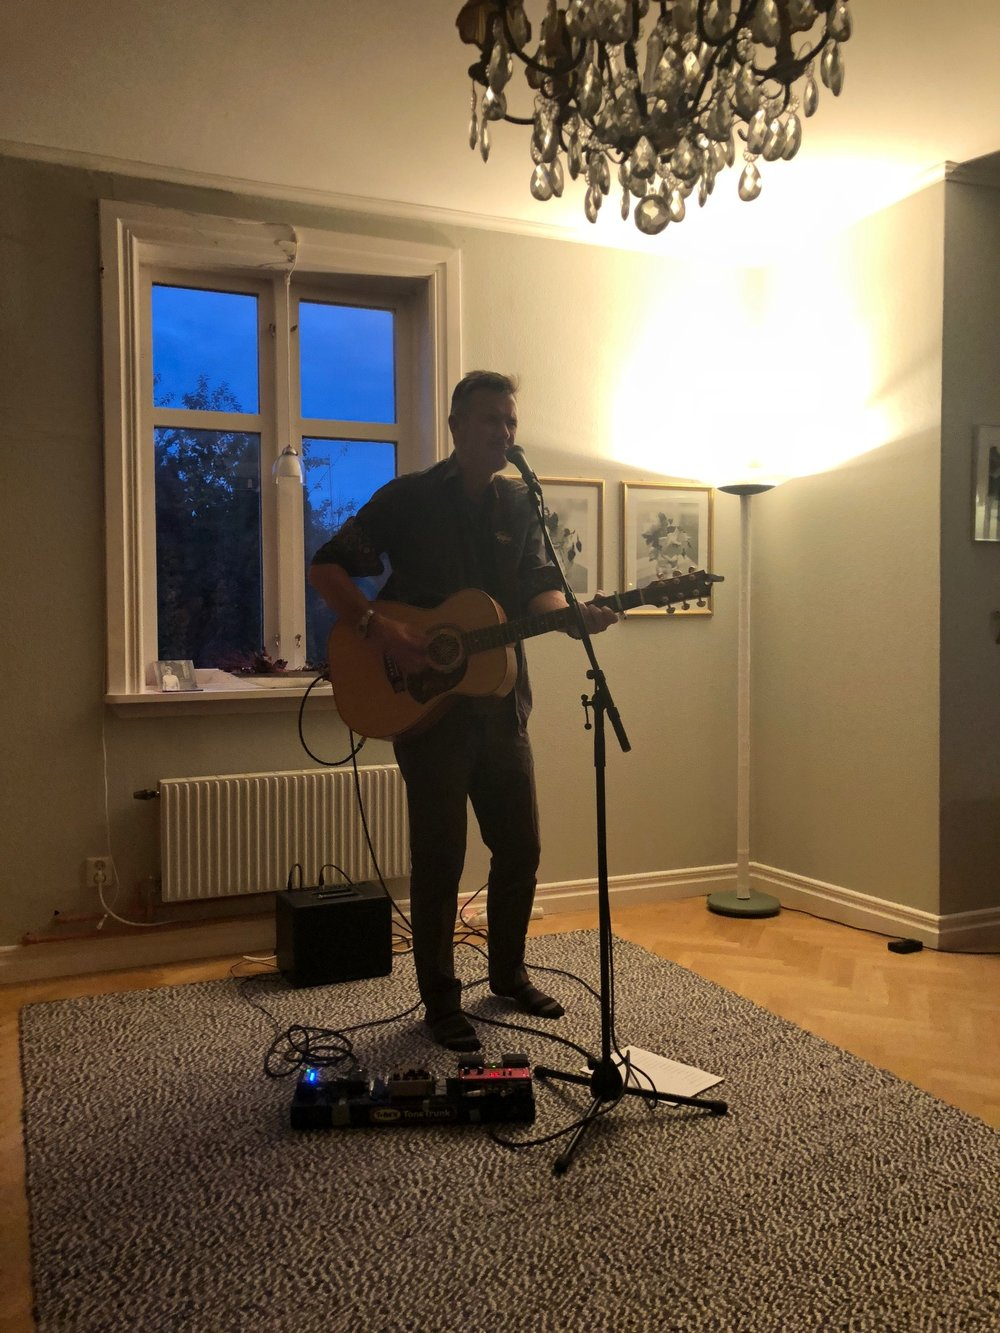 House concert in Alvesta at the wonderful home of Daniel and Pernilla.